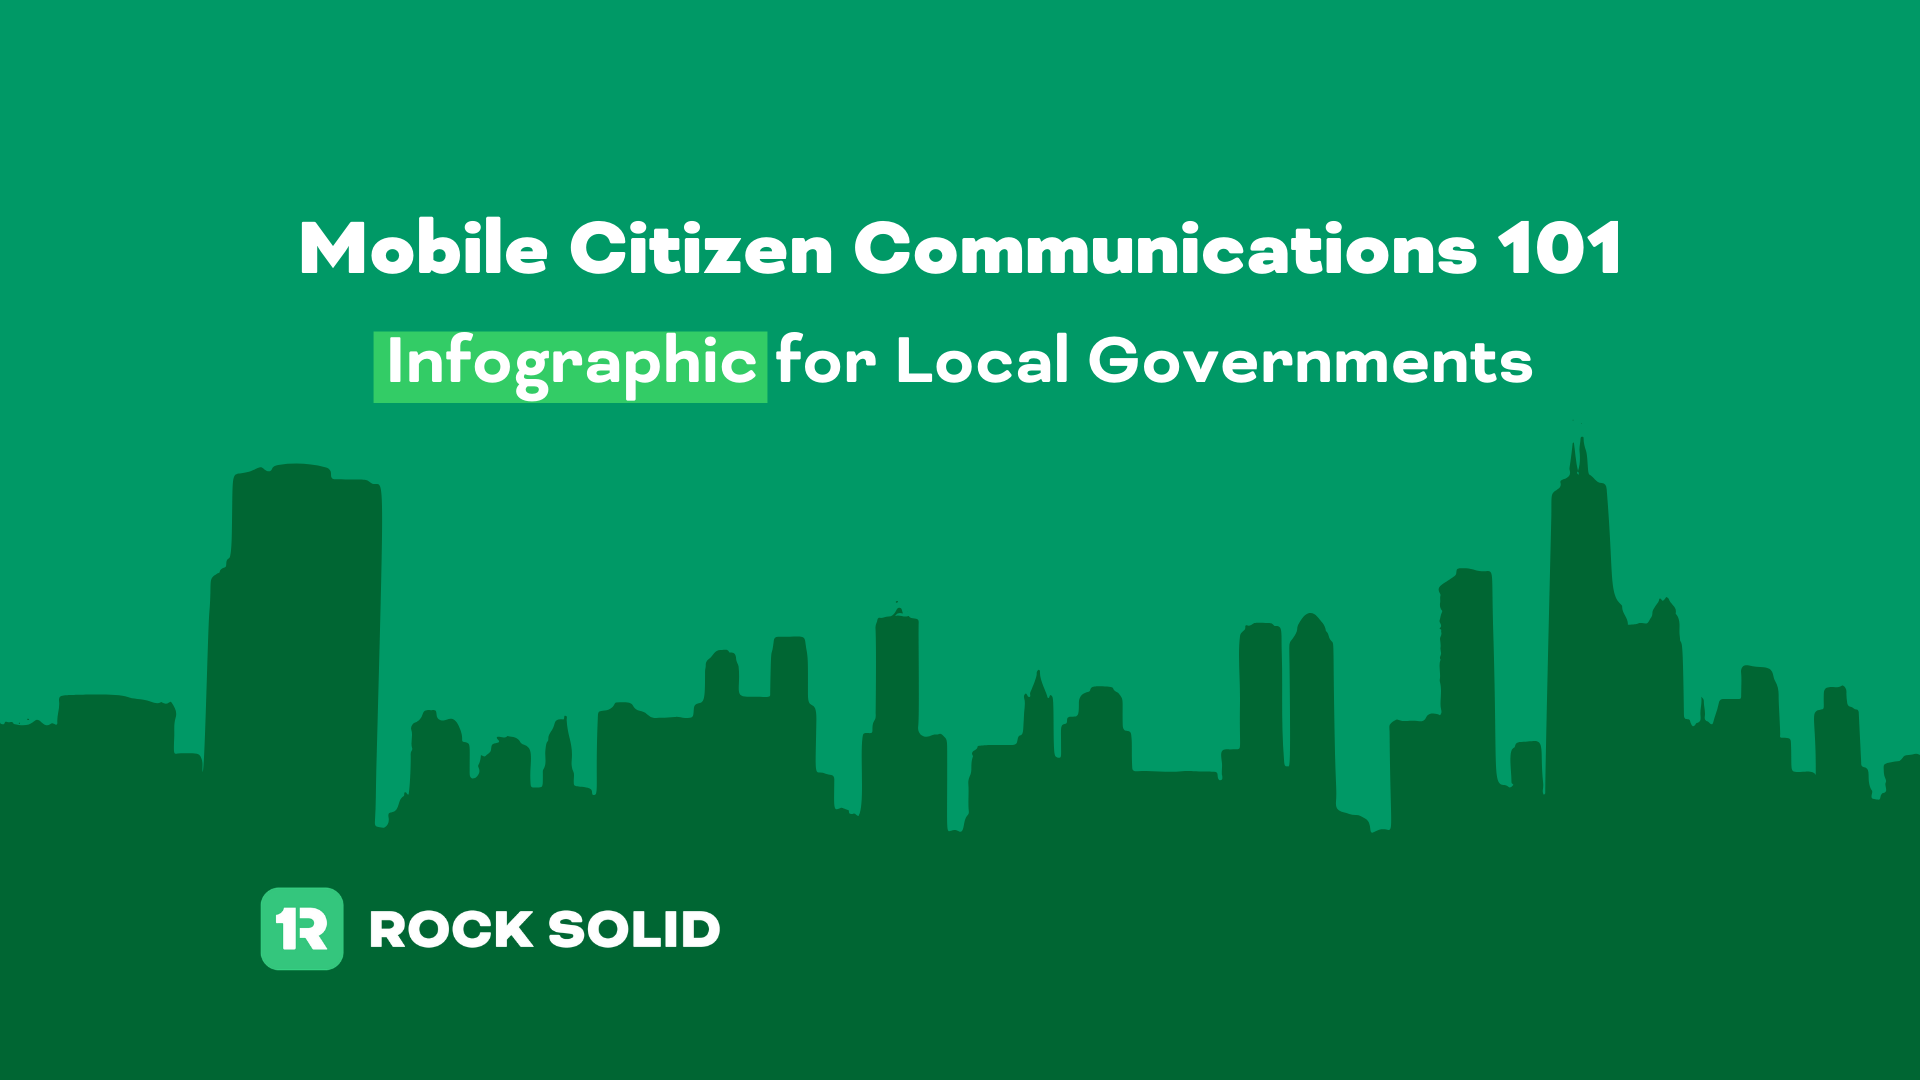 Mobile Citizen Communications 101